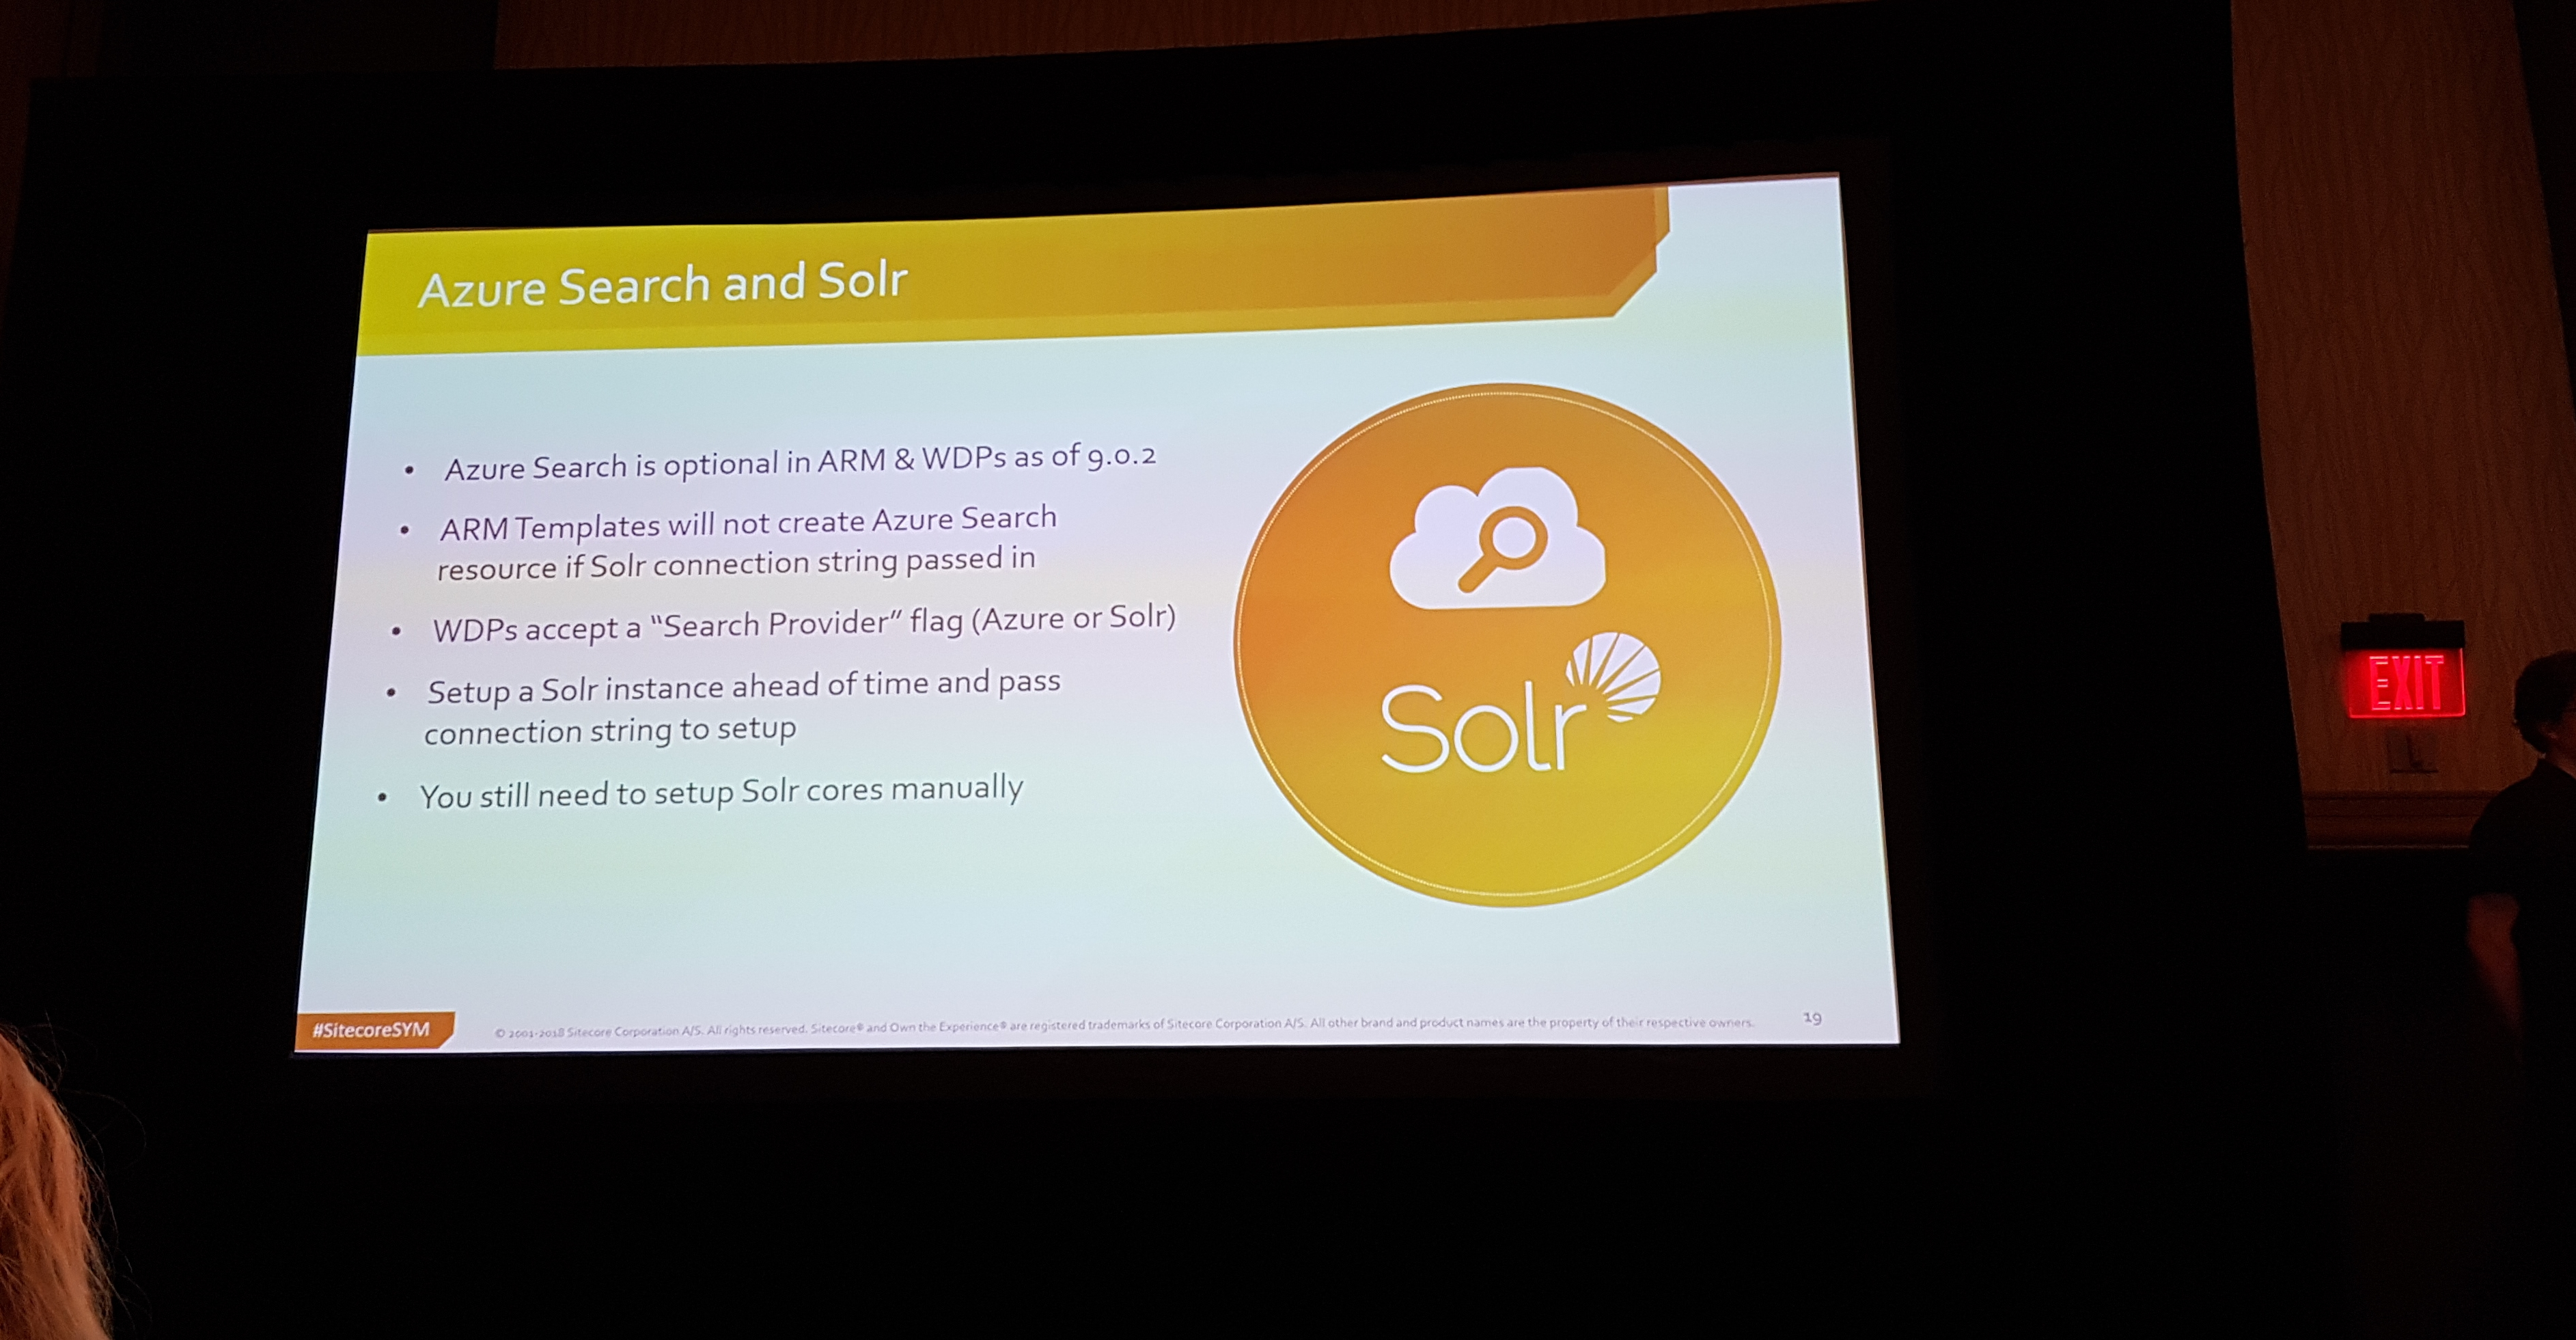 Azure on Solr